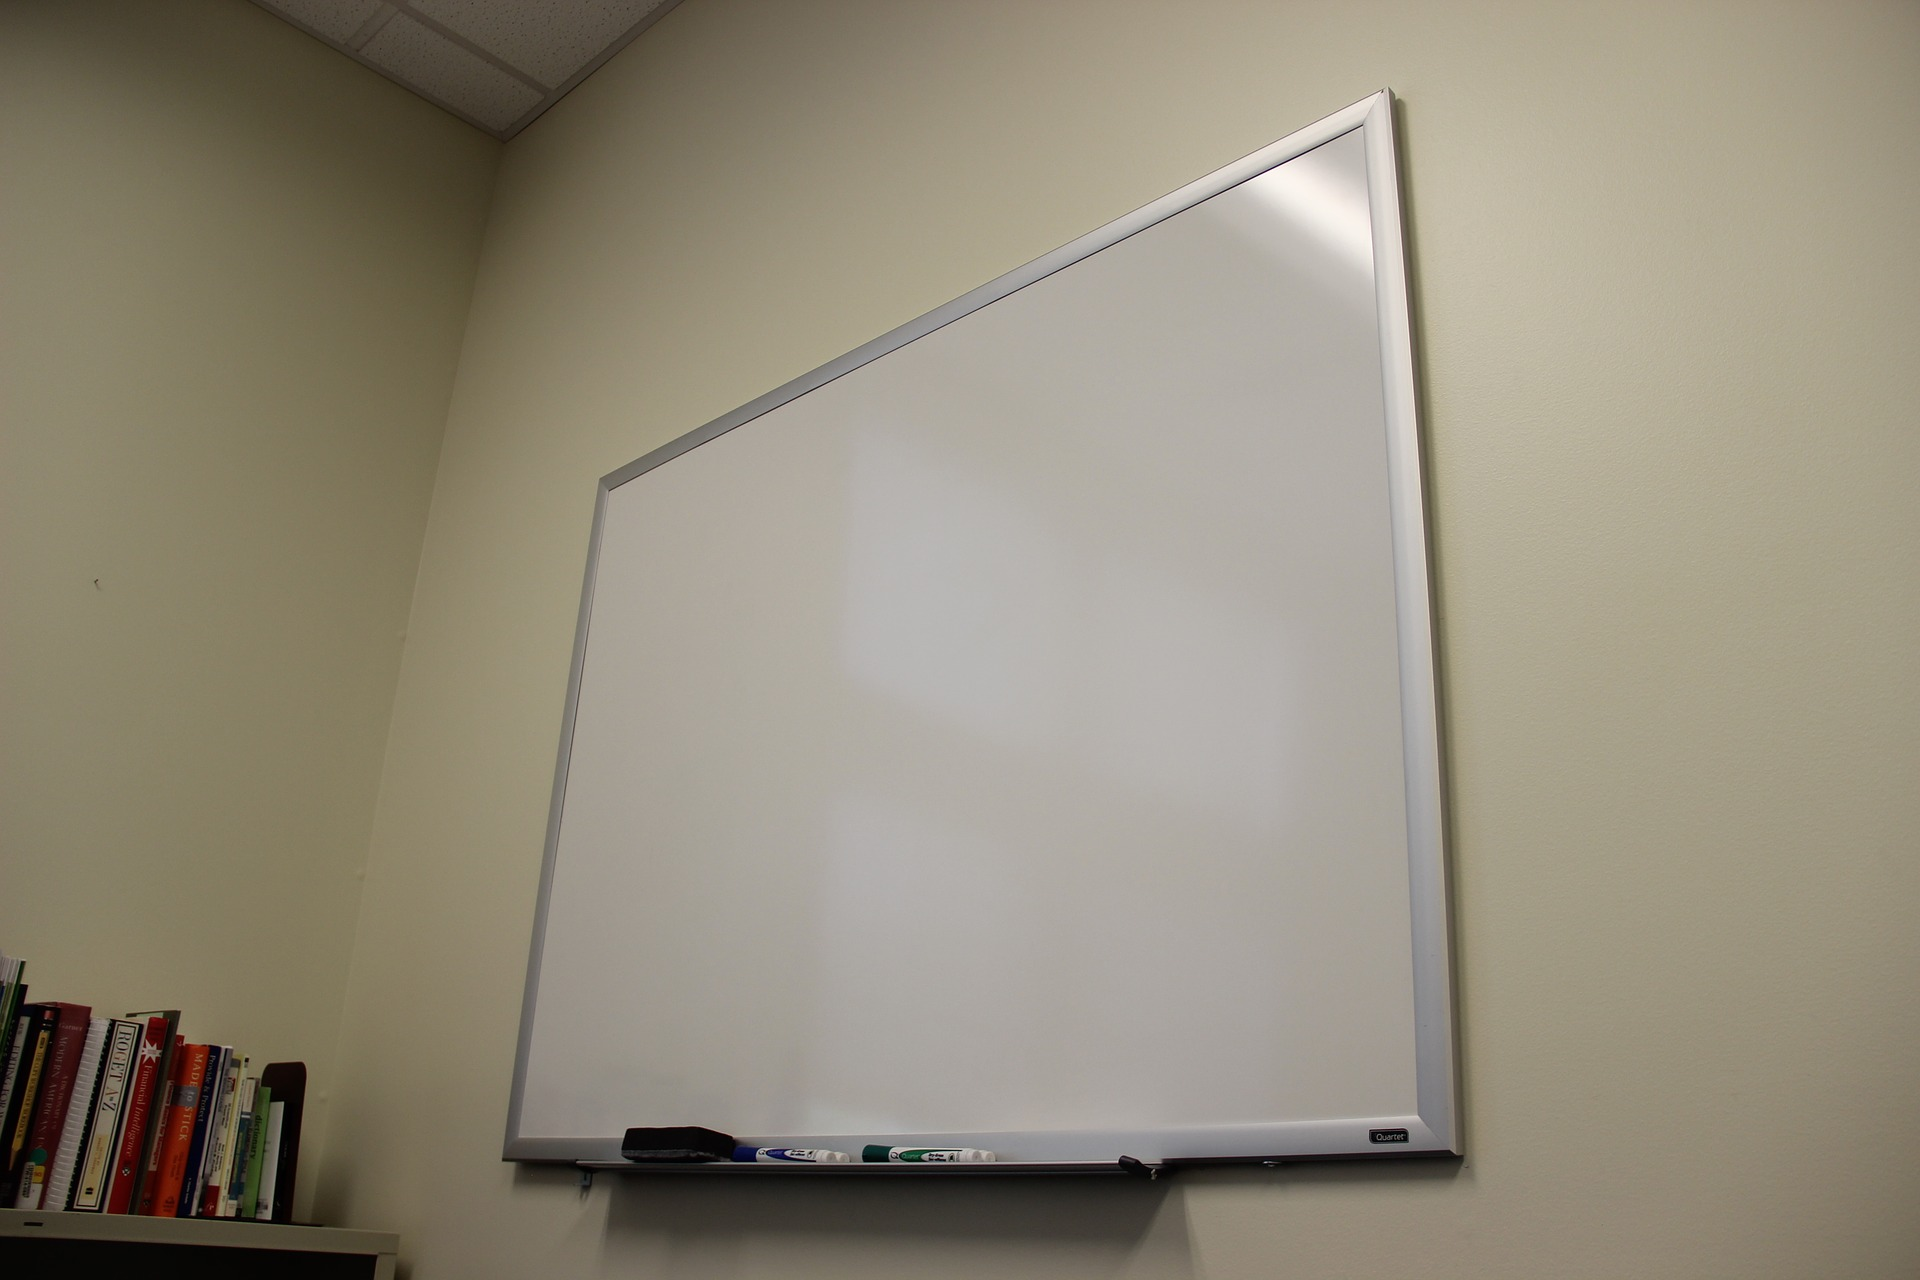 a clean whiteboard attached on the wall inside room with some books place properly on shelf